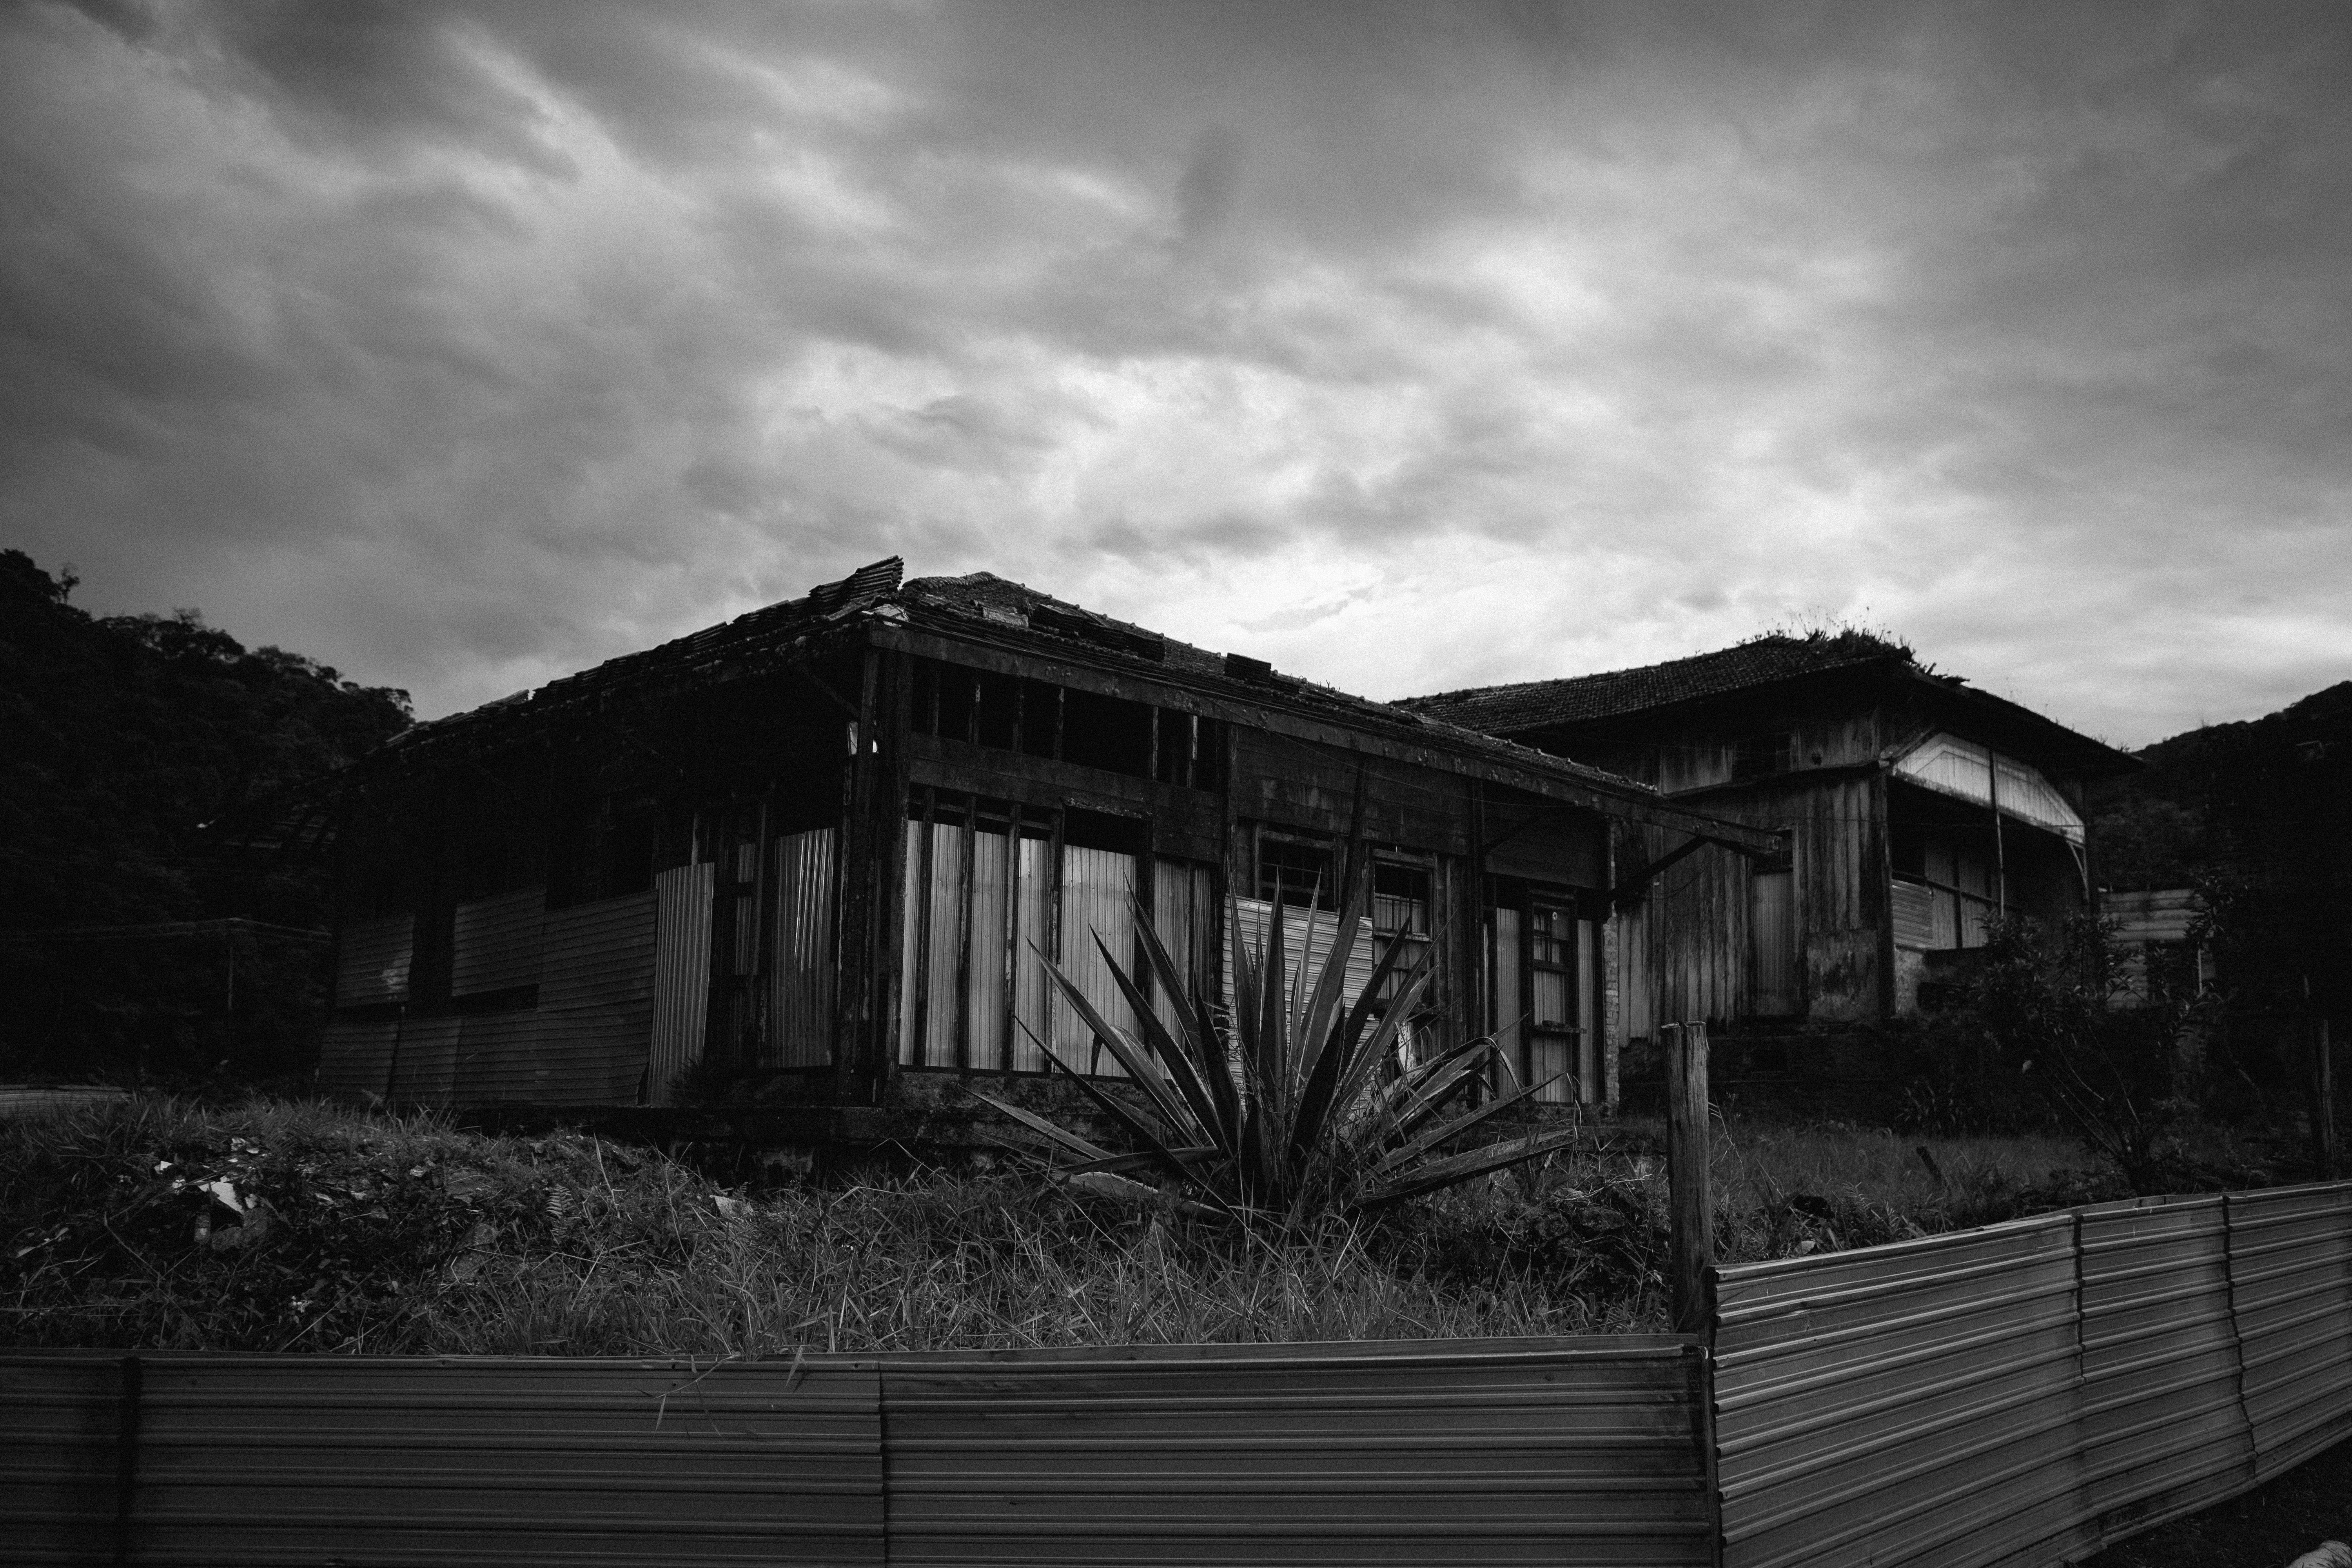 Monochrome Photo of Old House